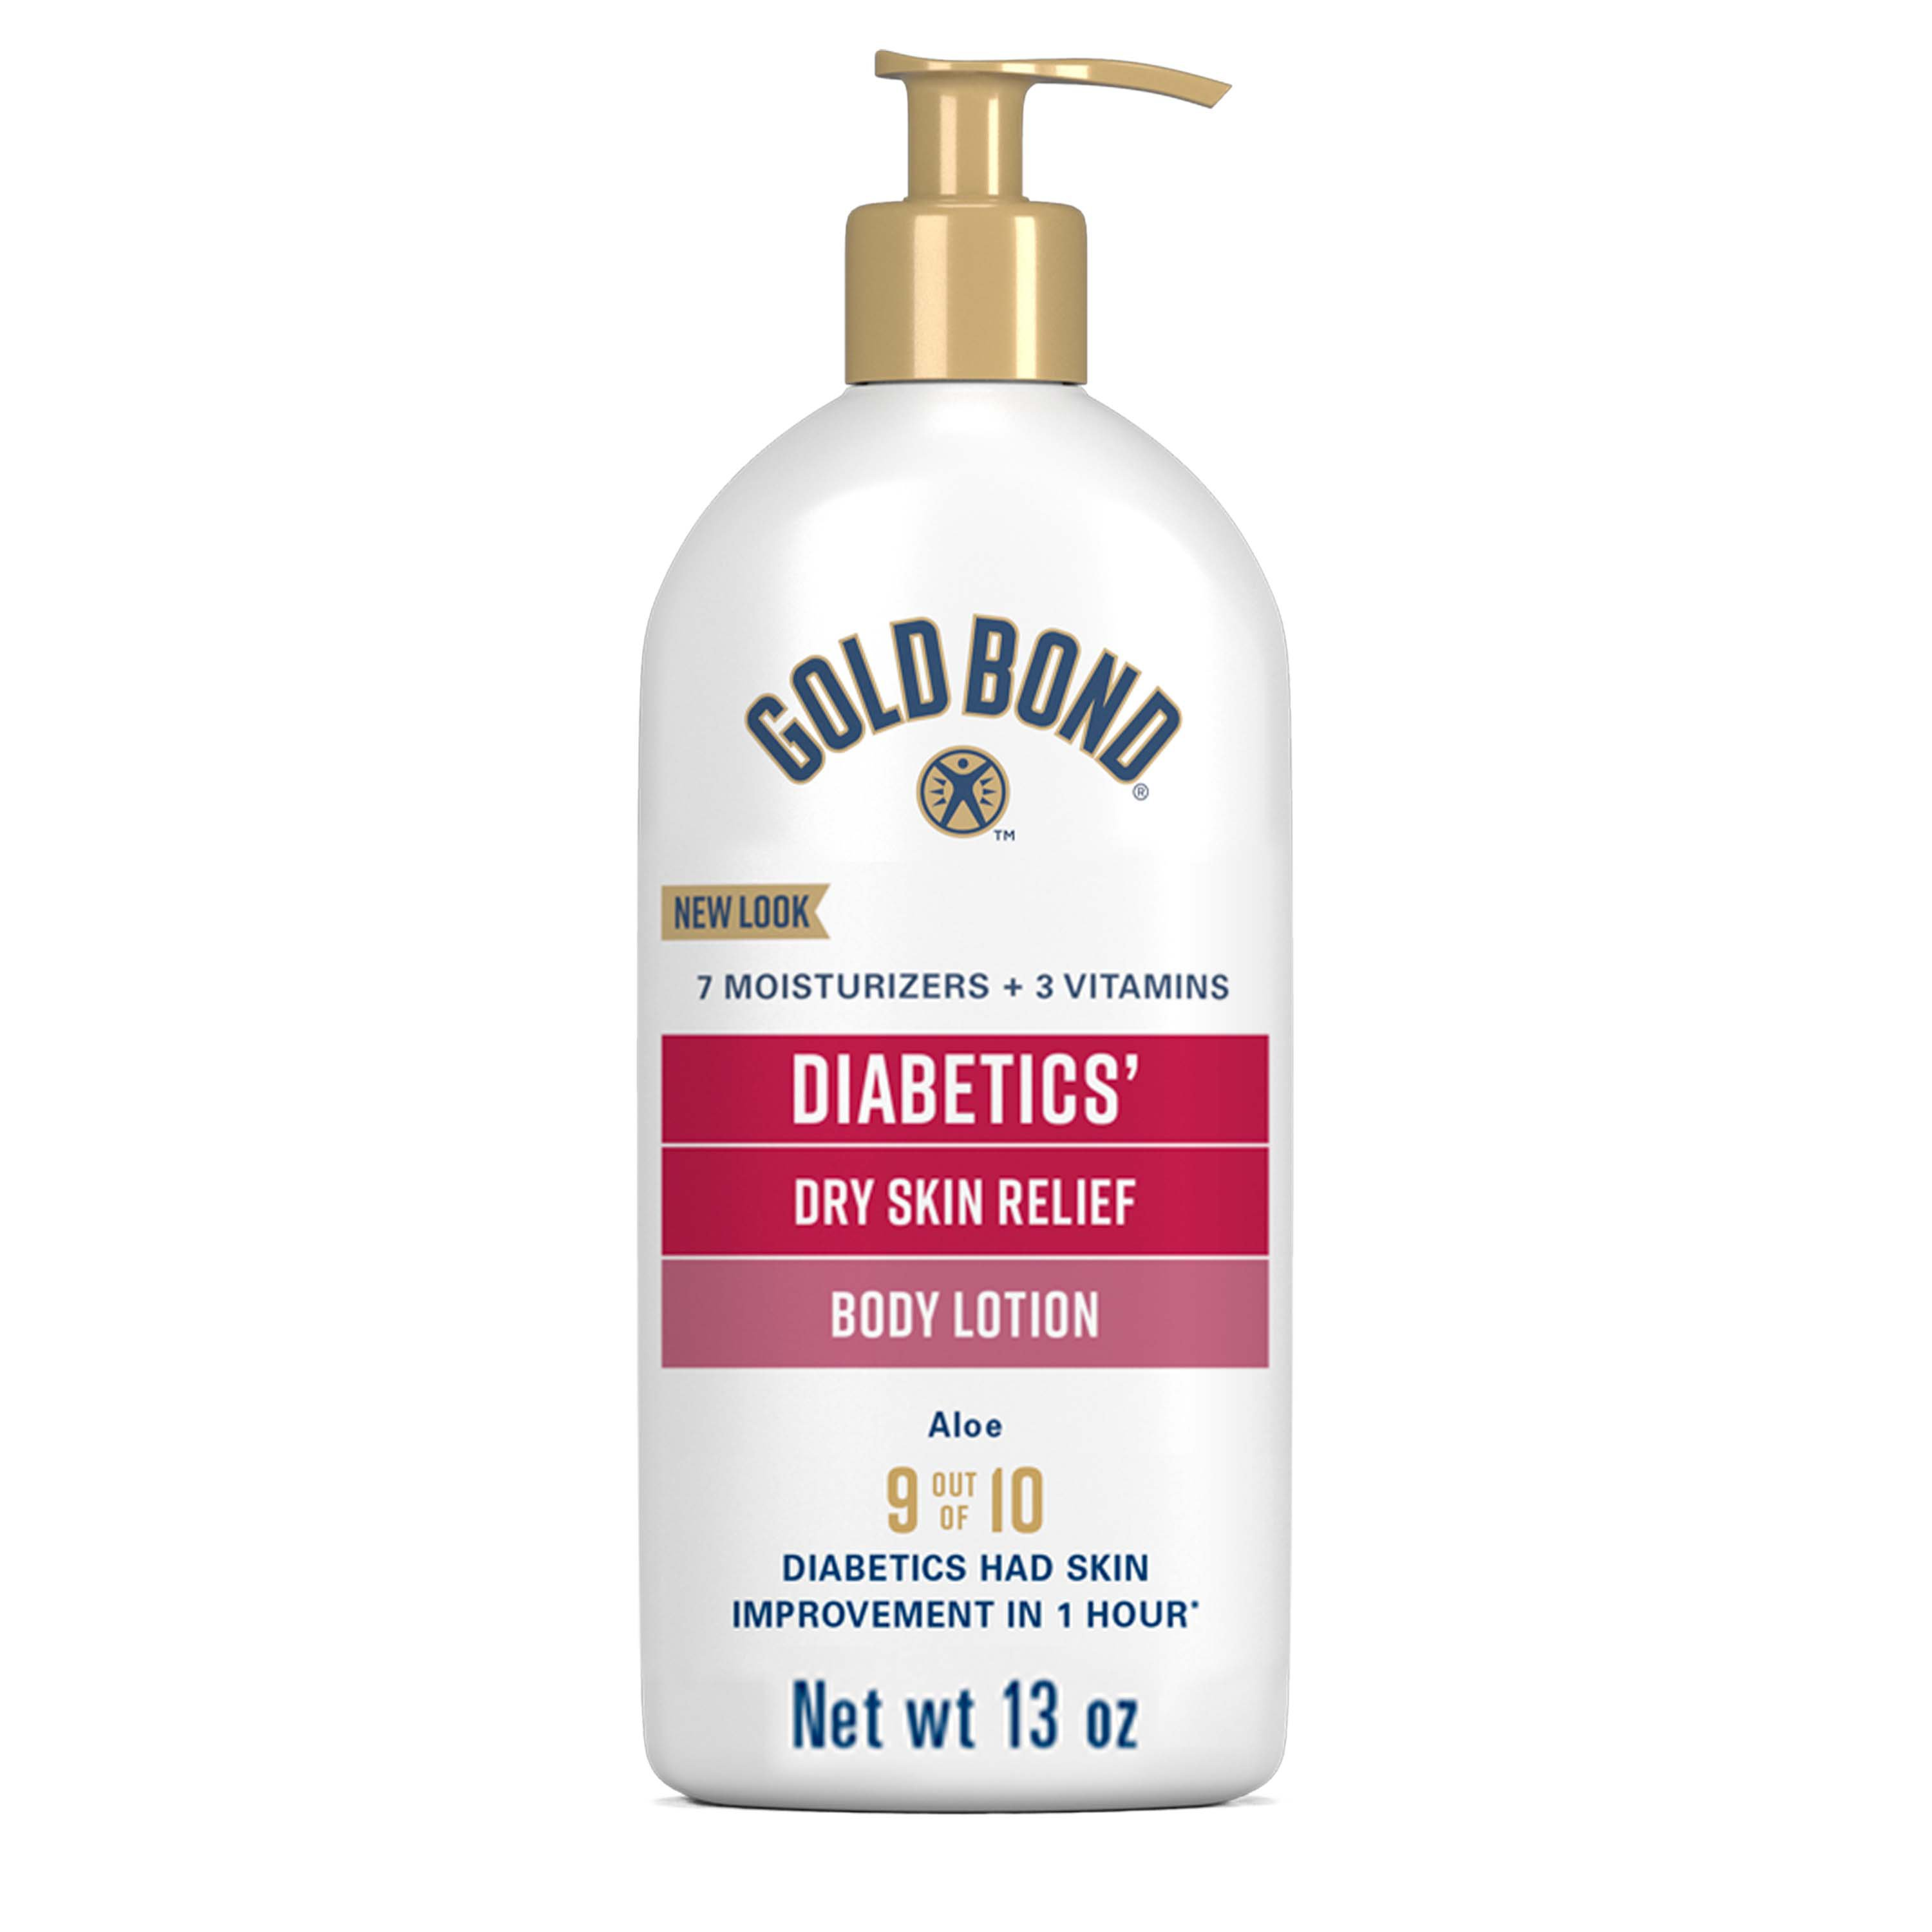 Gold Bond Diabetics Dry Skin Relief Hydrating Lotion Shop